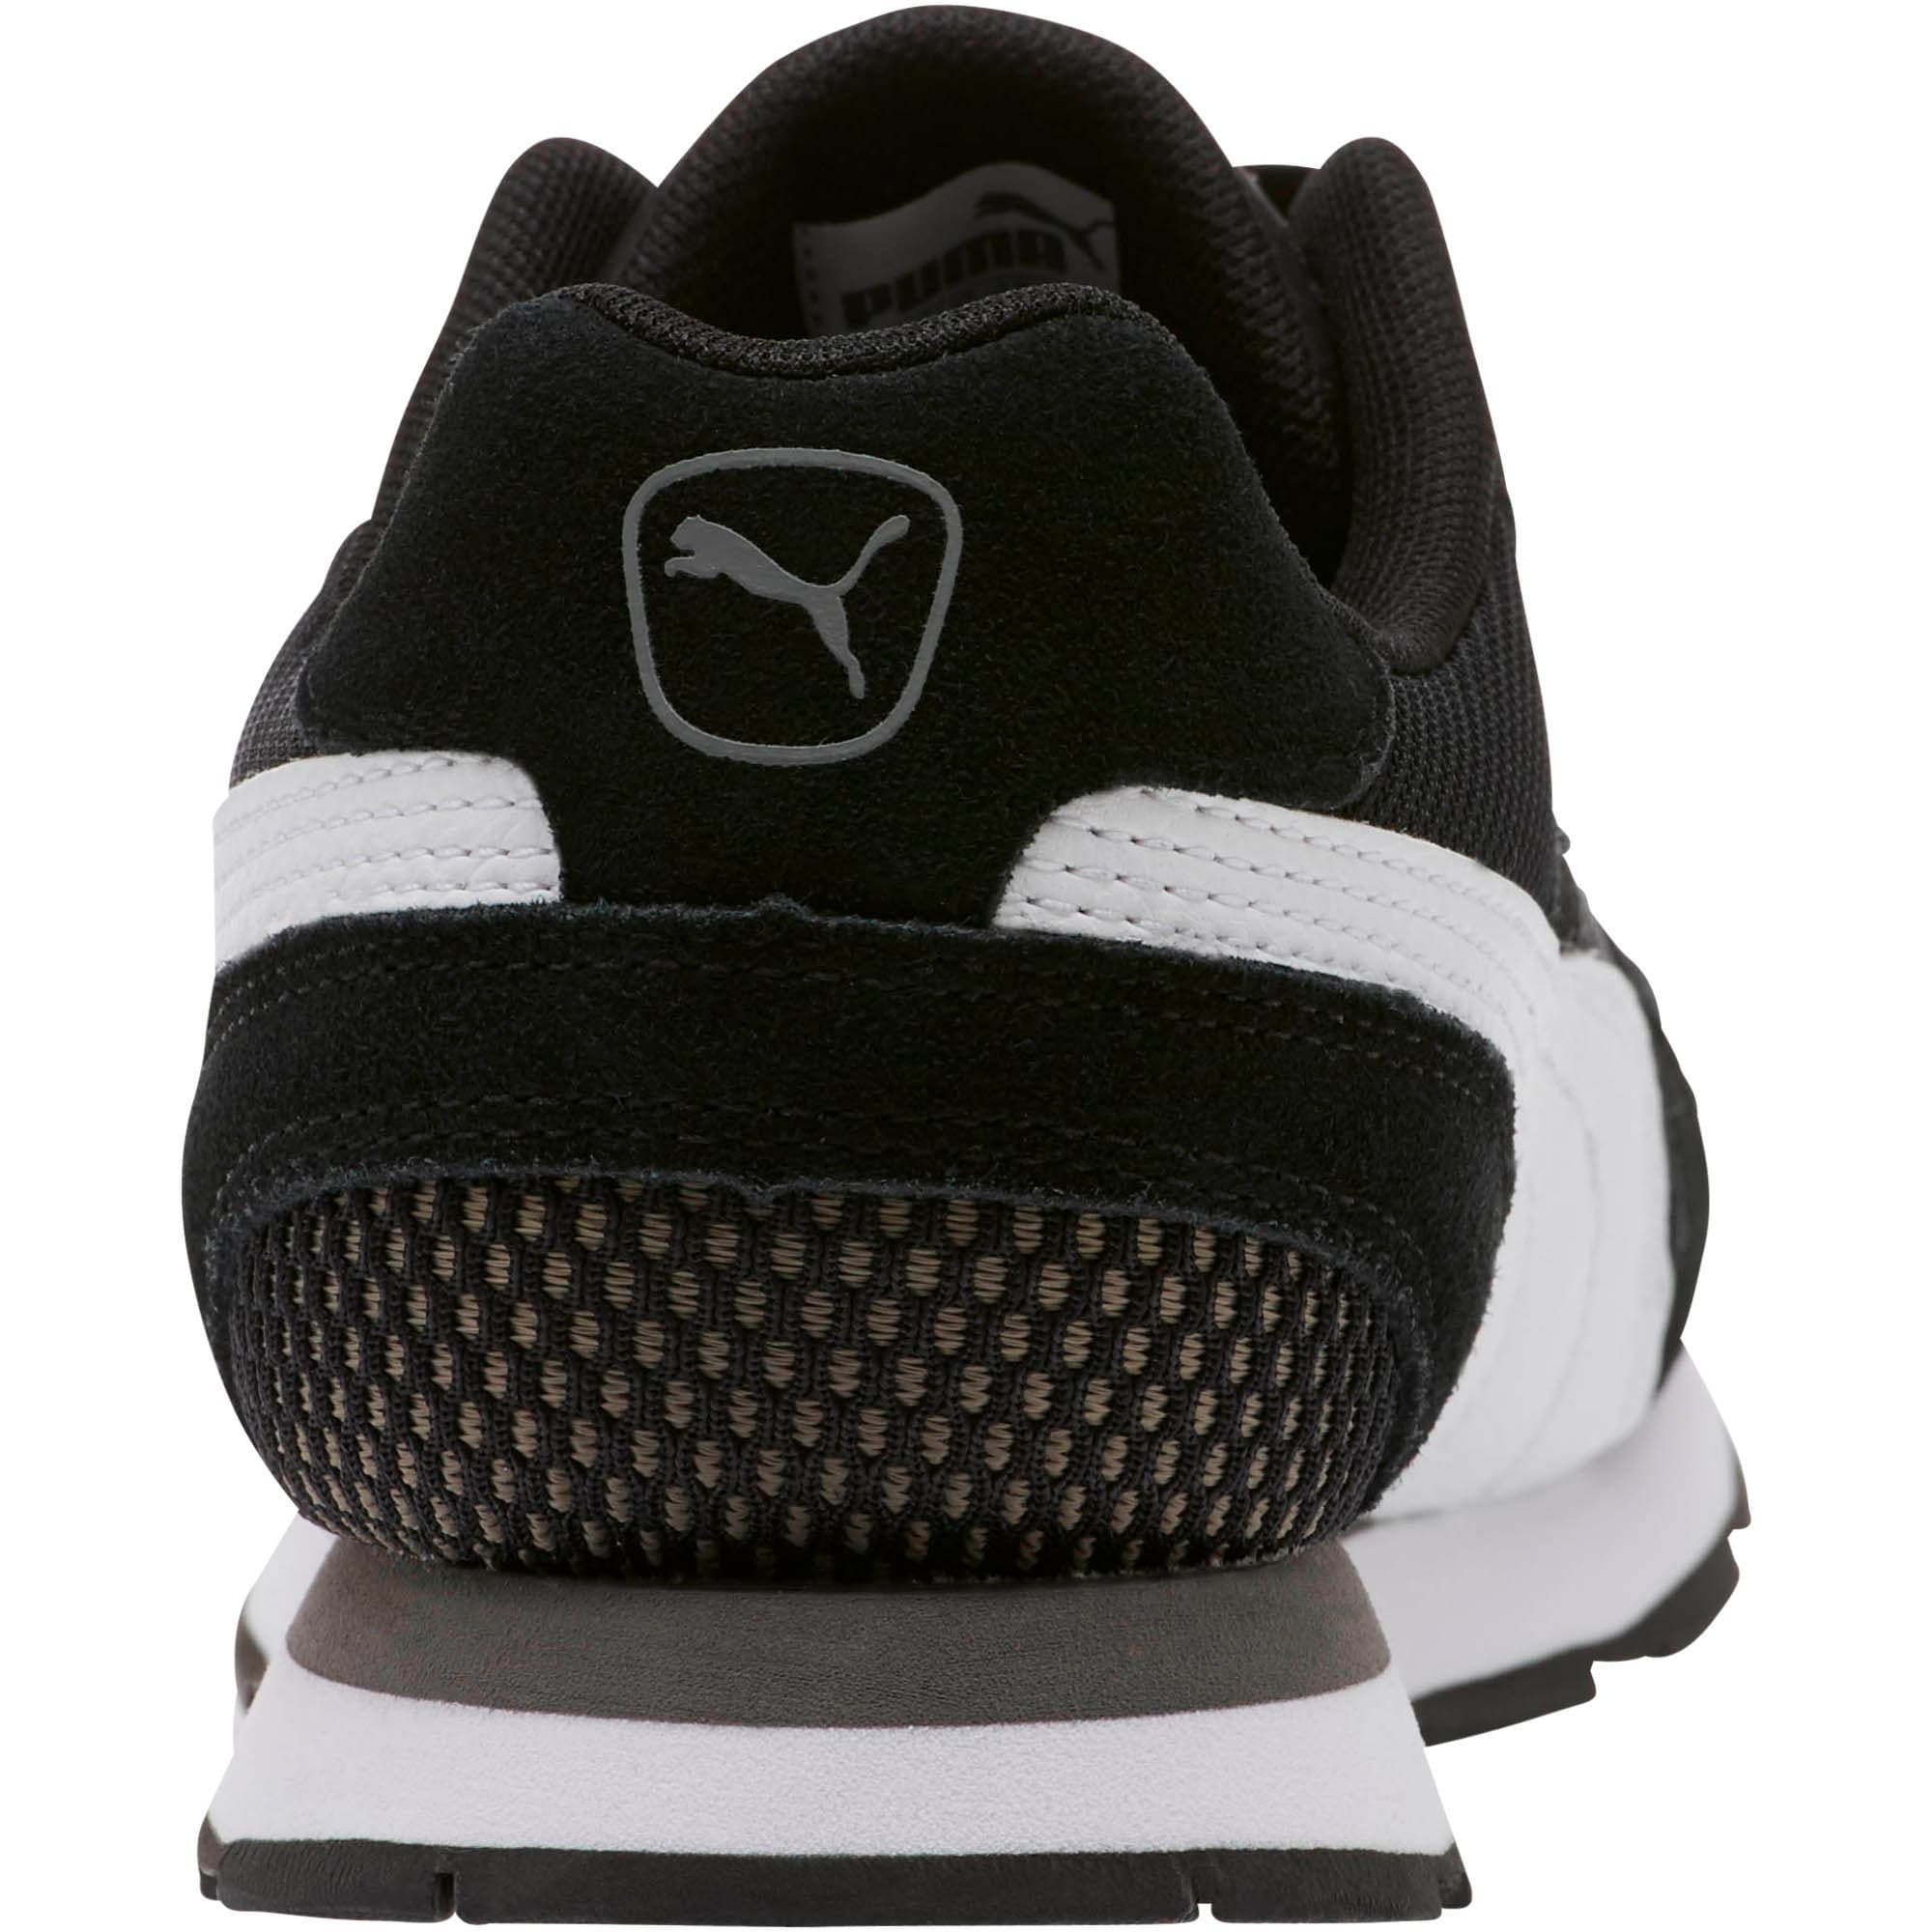 Vista Women's Sneakers, Black-White-Charcoal Gray, large